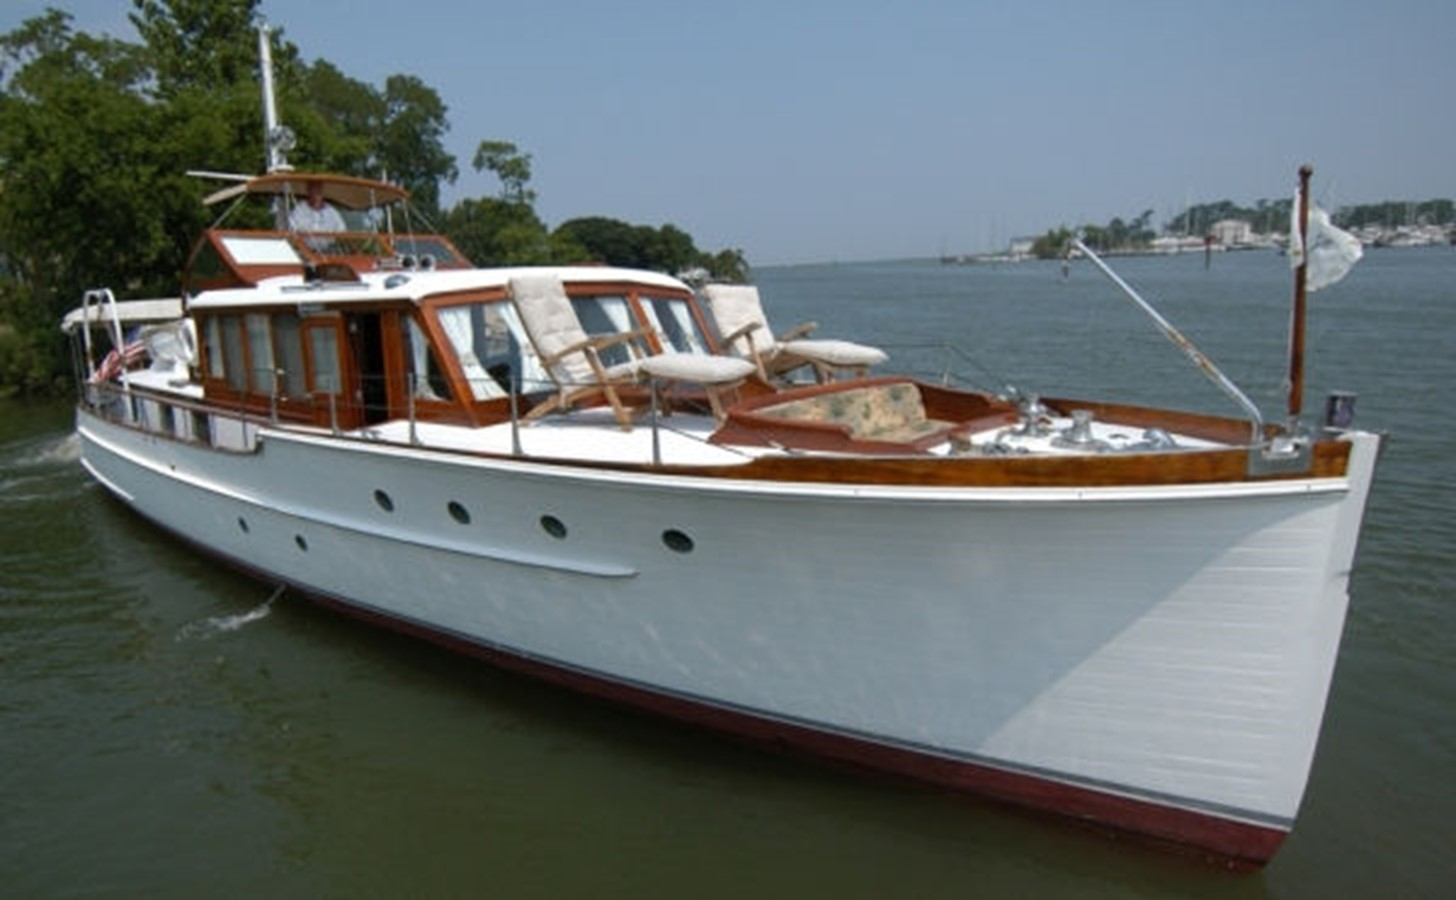 53' Elco - Profile Picture - 53 ELCO MARINE For Sale